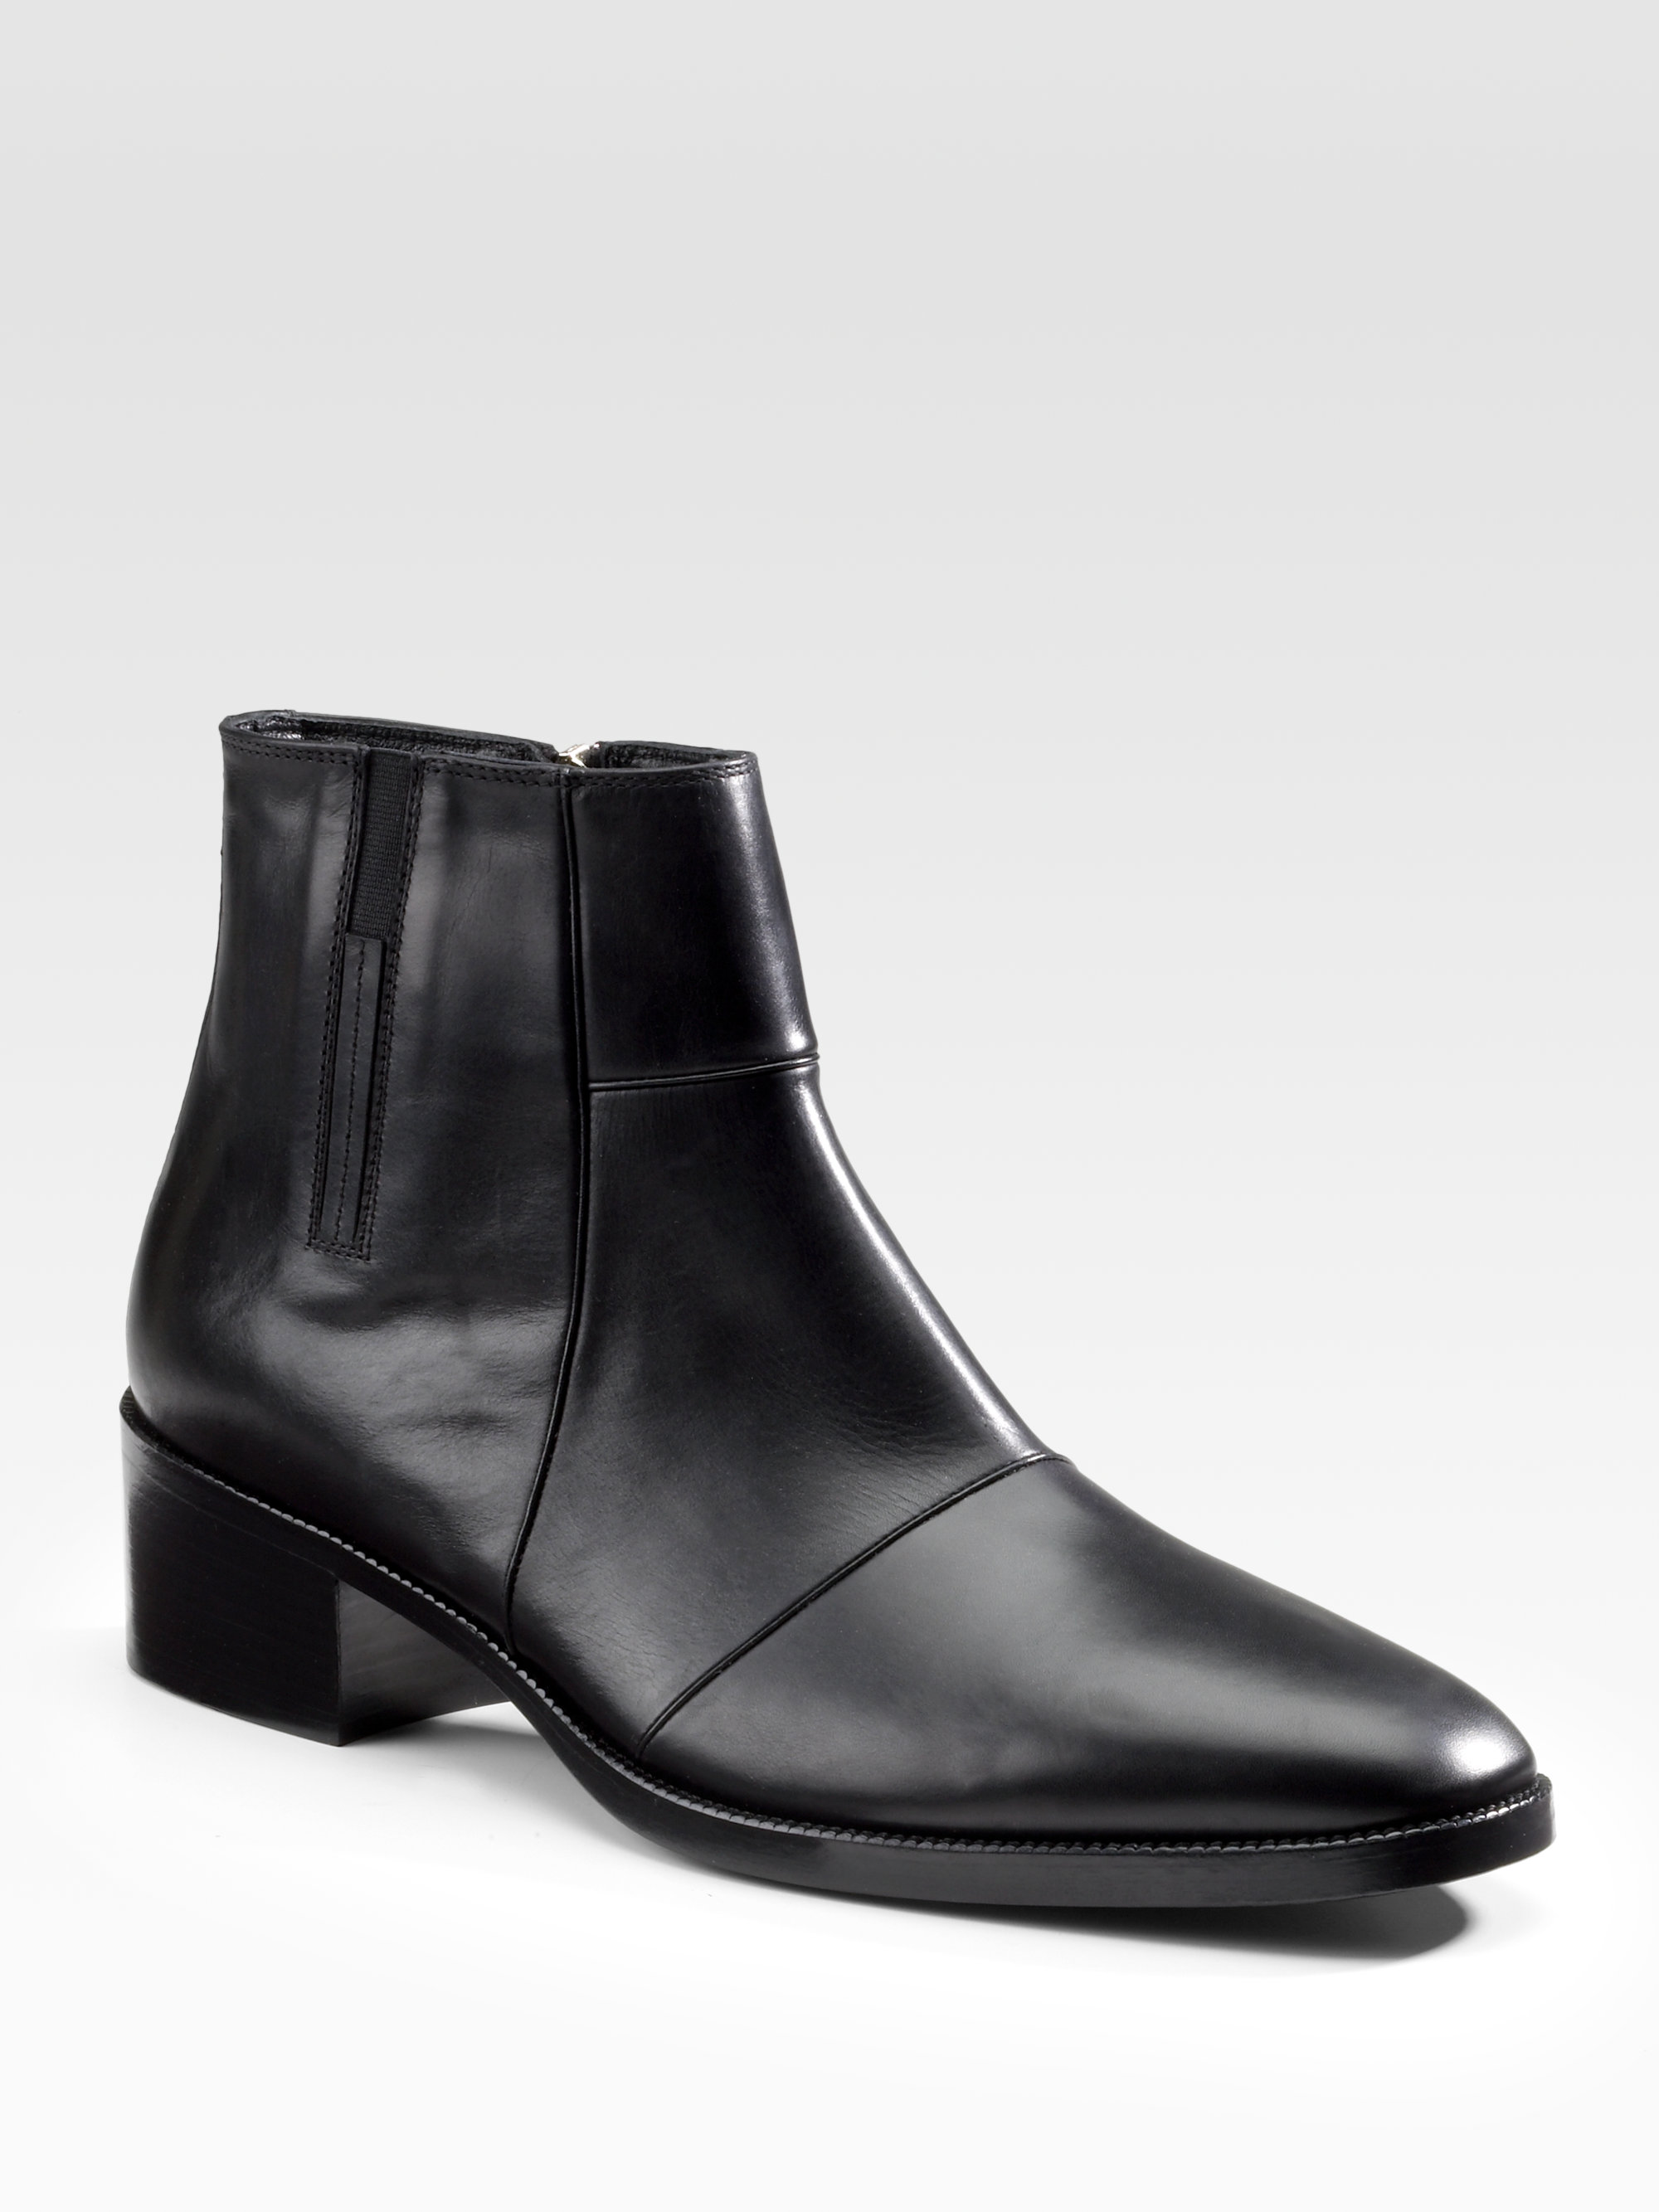 6ad33fc8f7b6 Lyst - Dior Homme Leather Boots in Black for Men